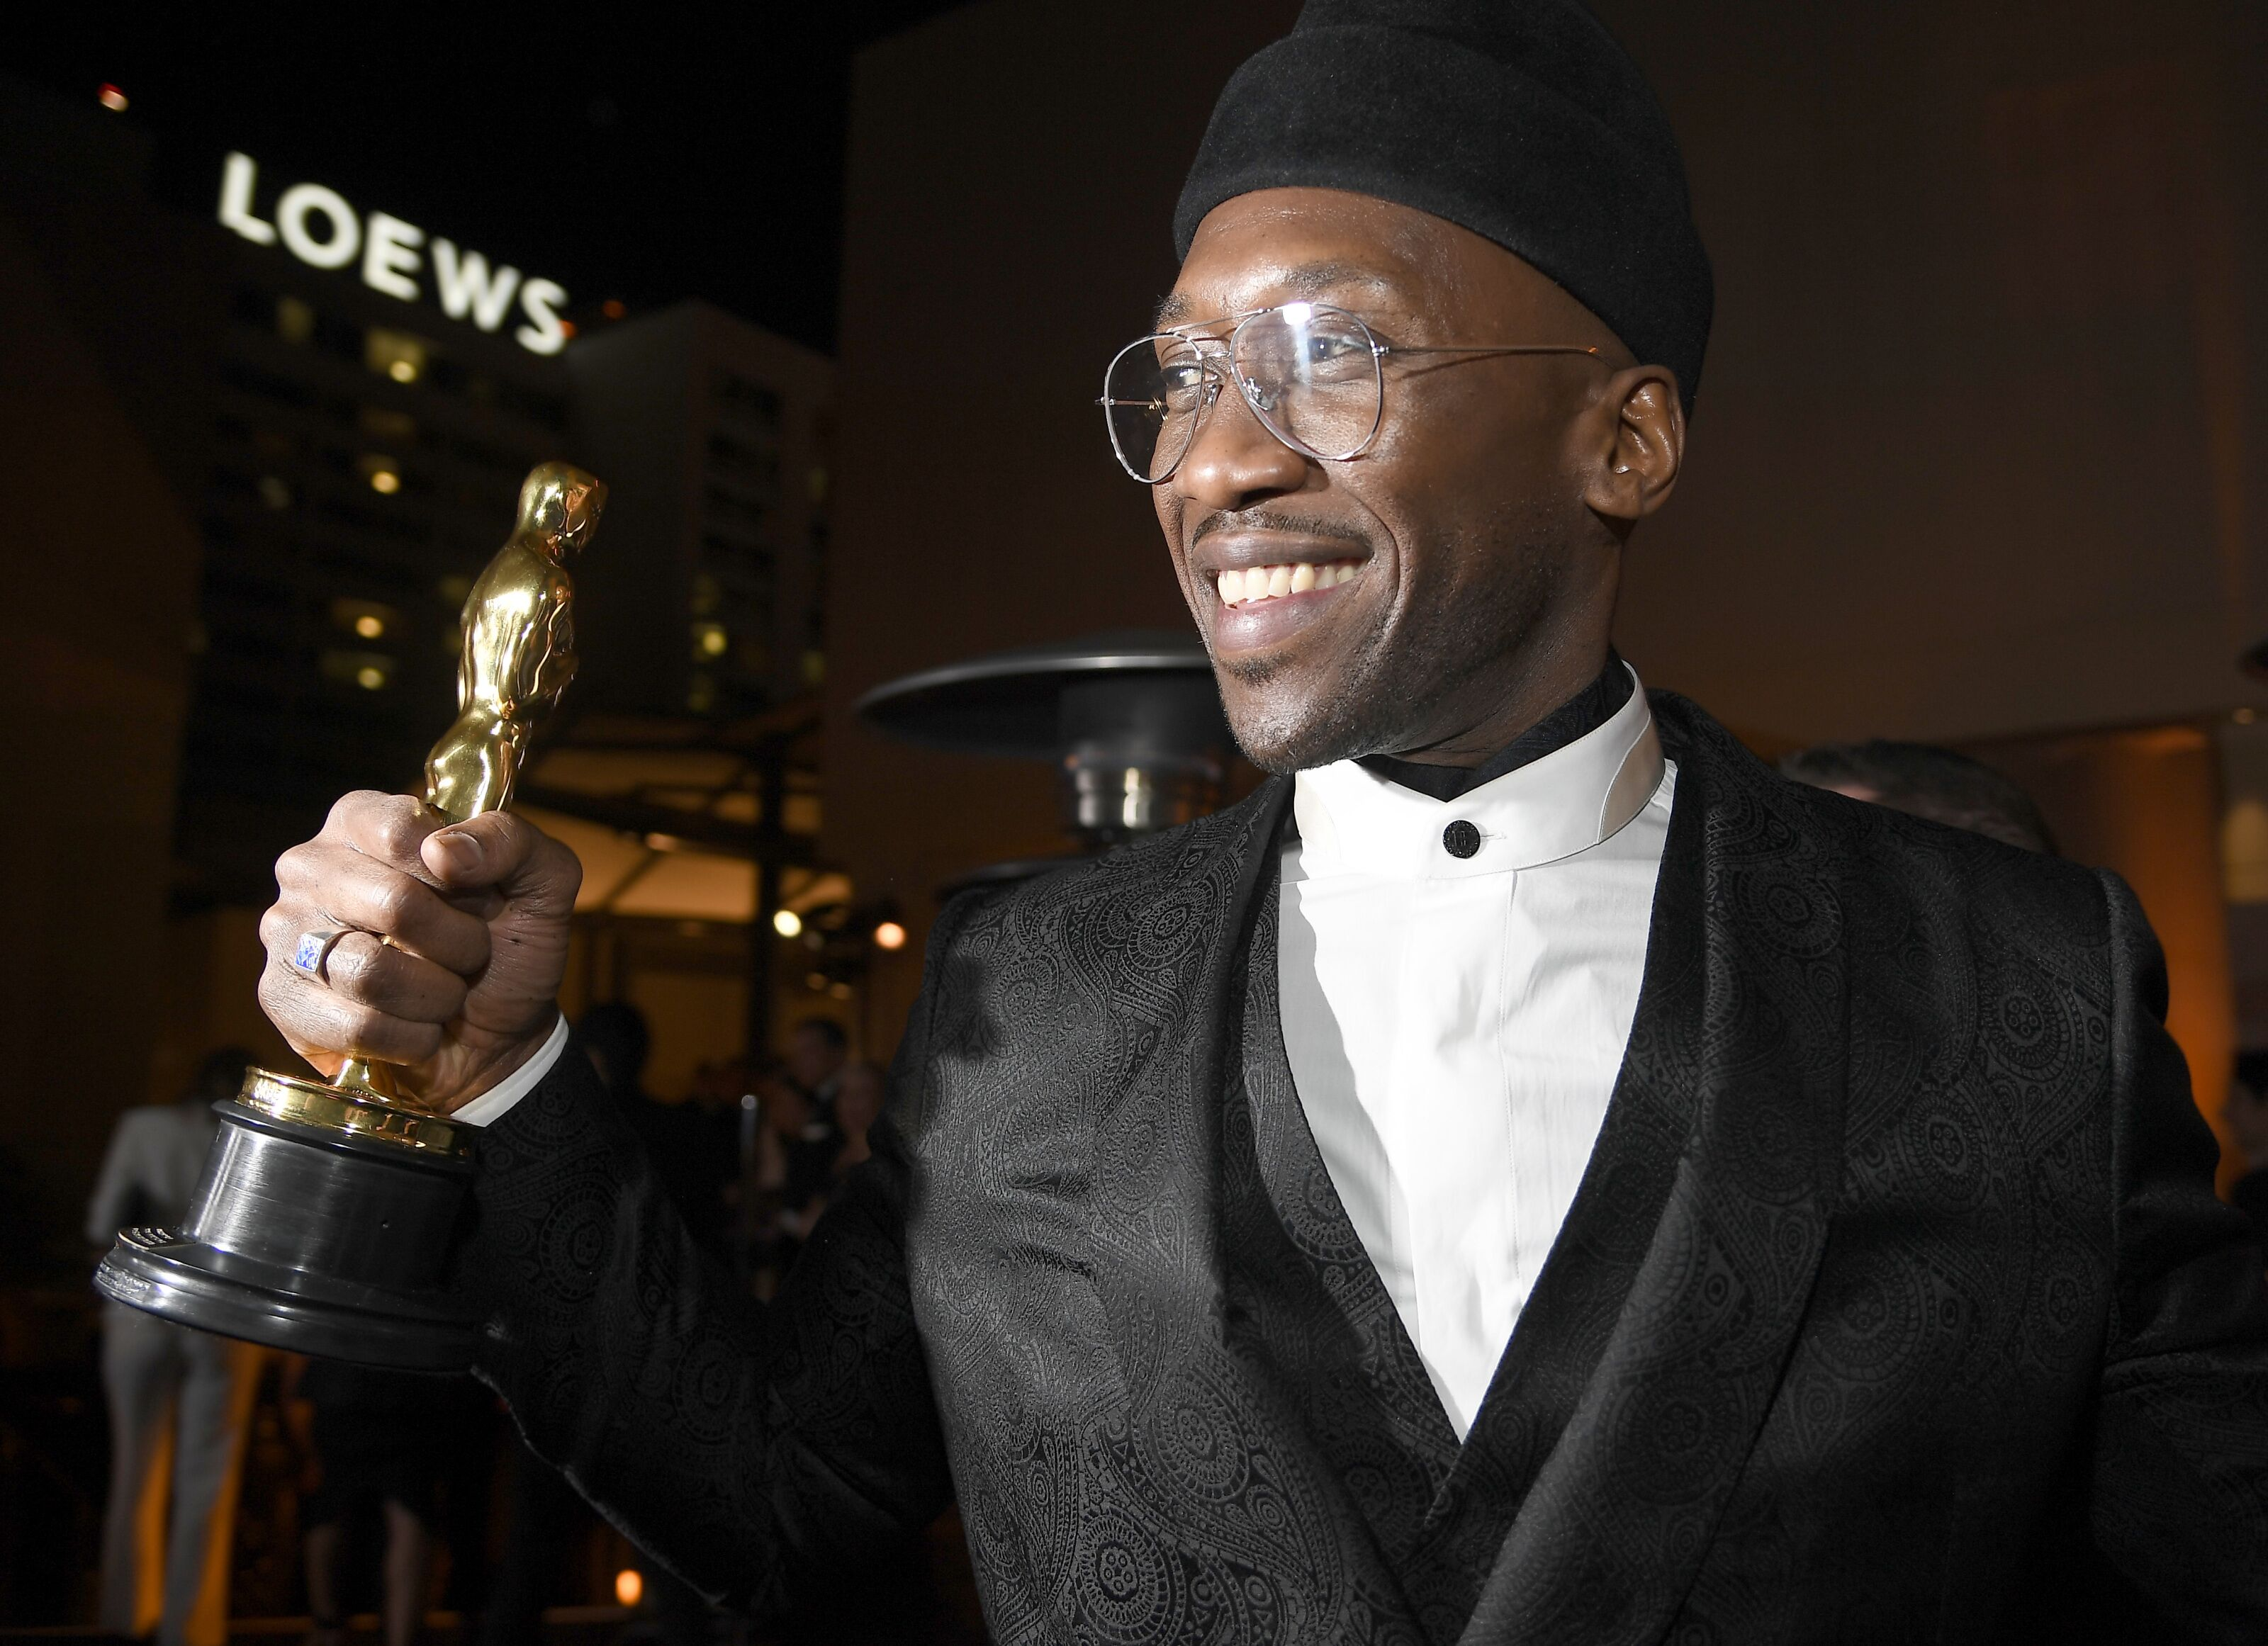 SDCC 2019: Mahershala Ali will replace Wesley Snipes as Blade